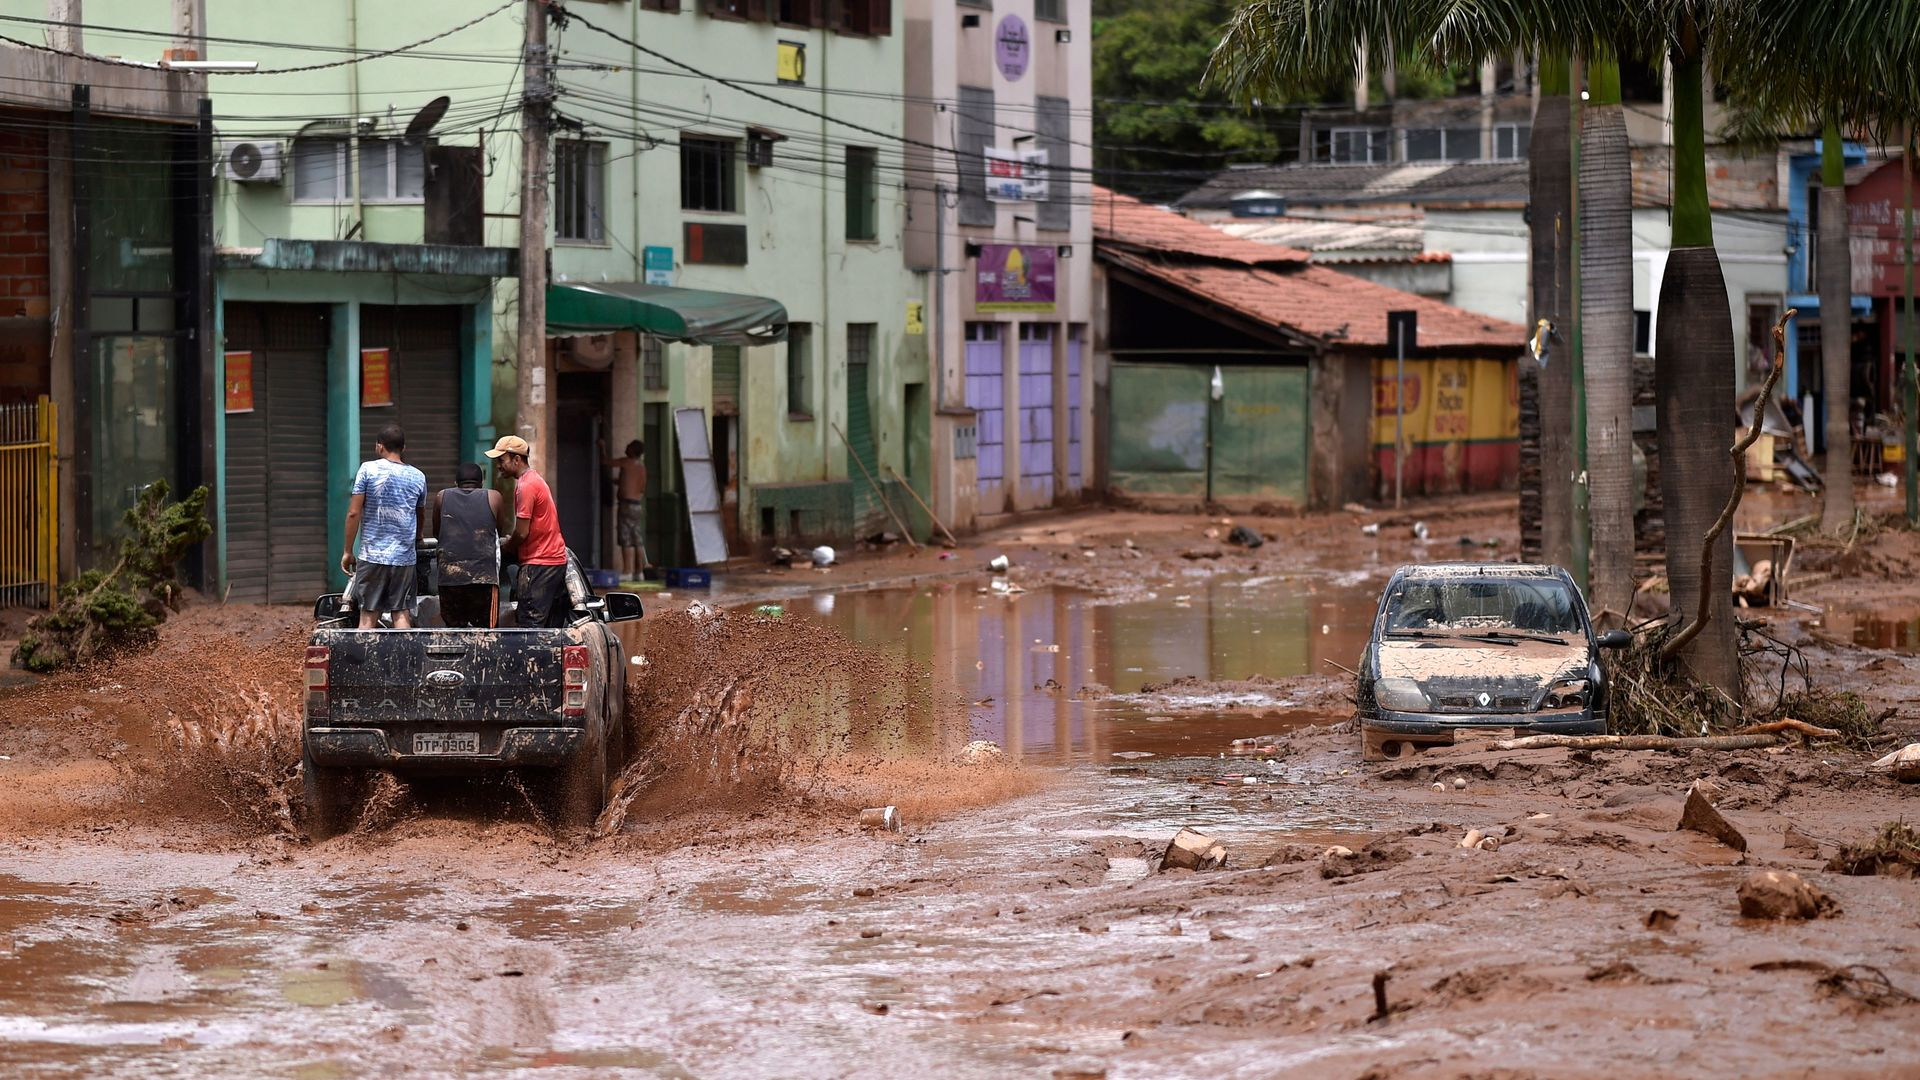 A truck rides along a flooded street after the overflowing of the Das Velhas River in Sabara